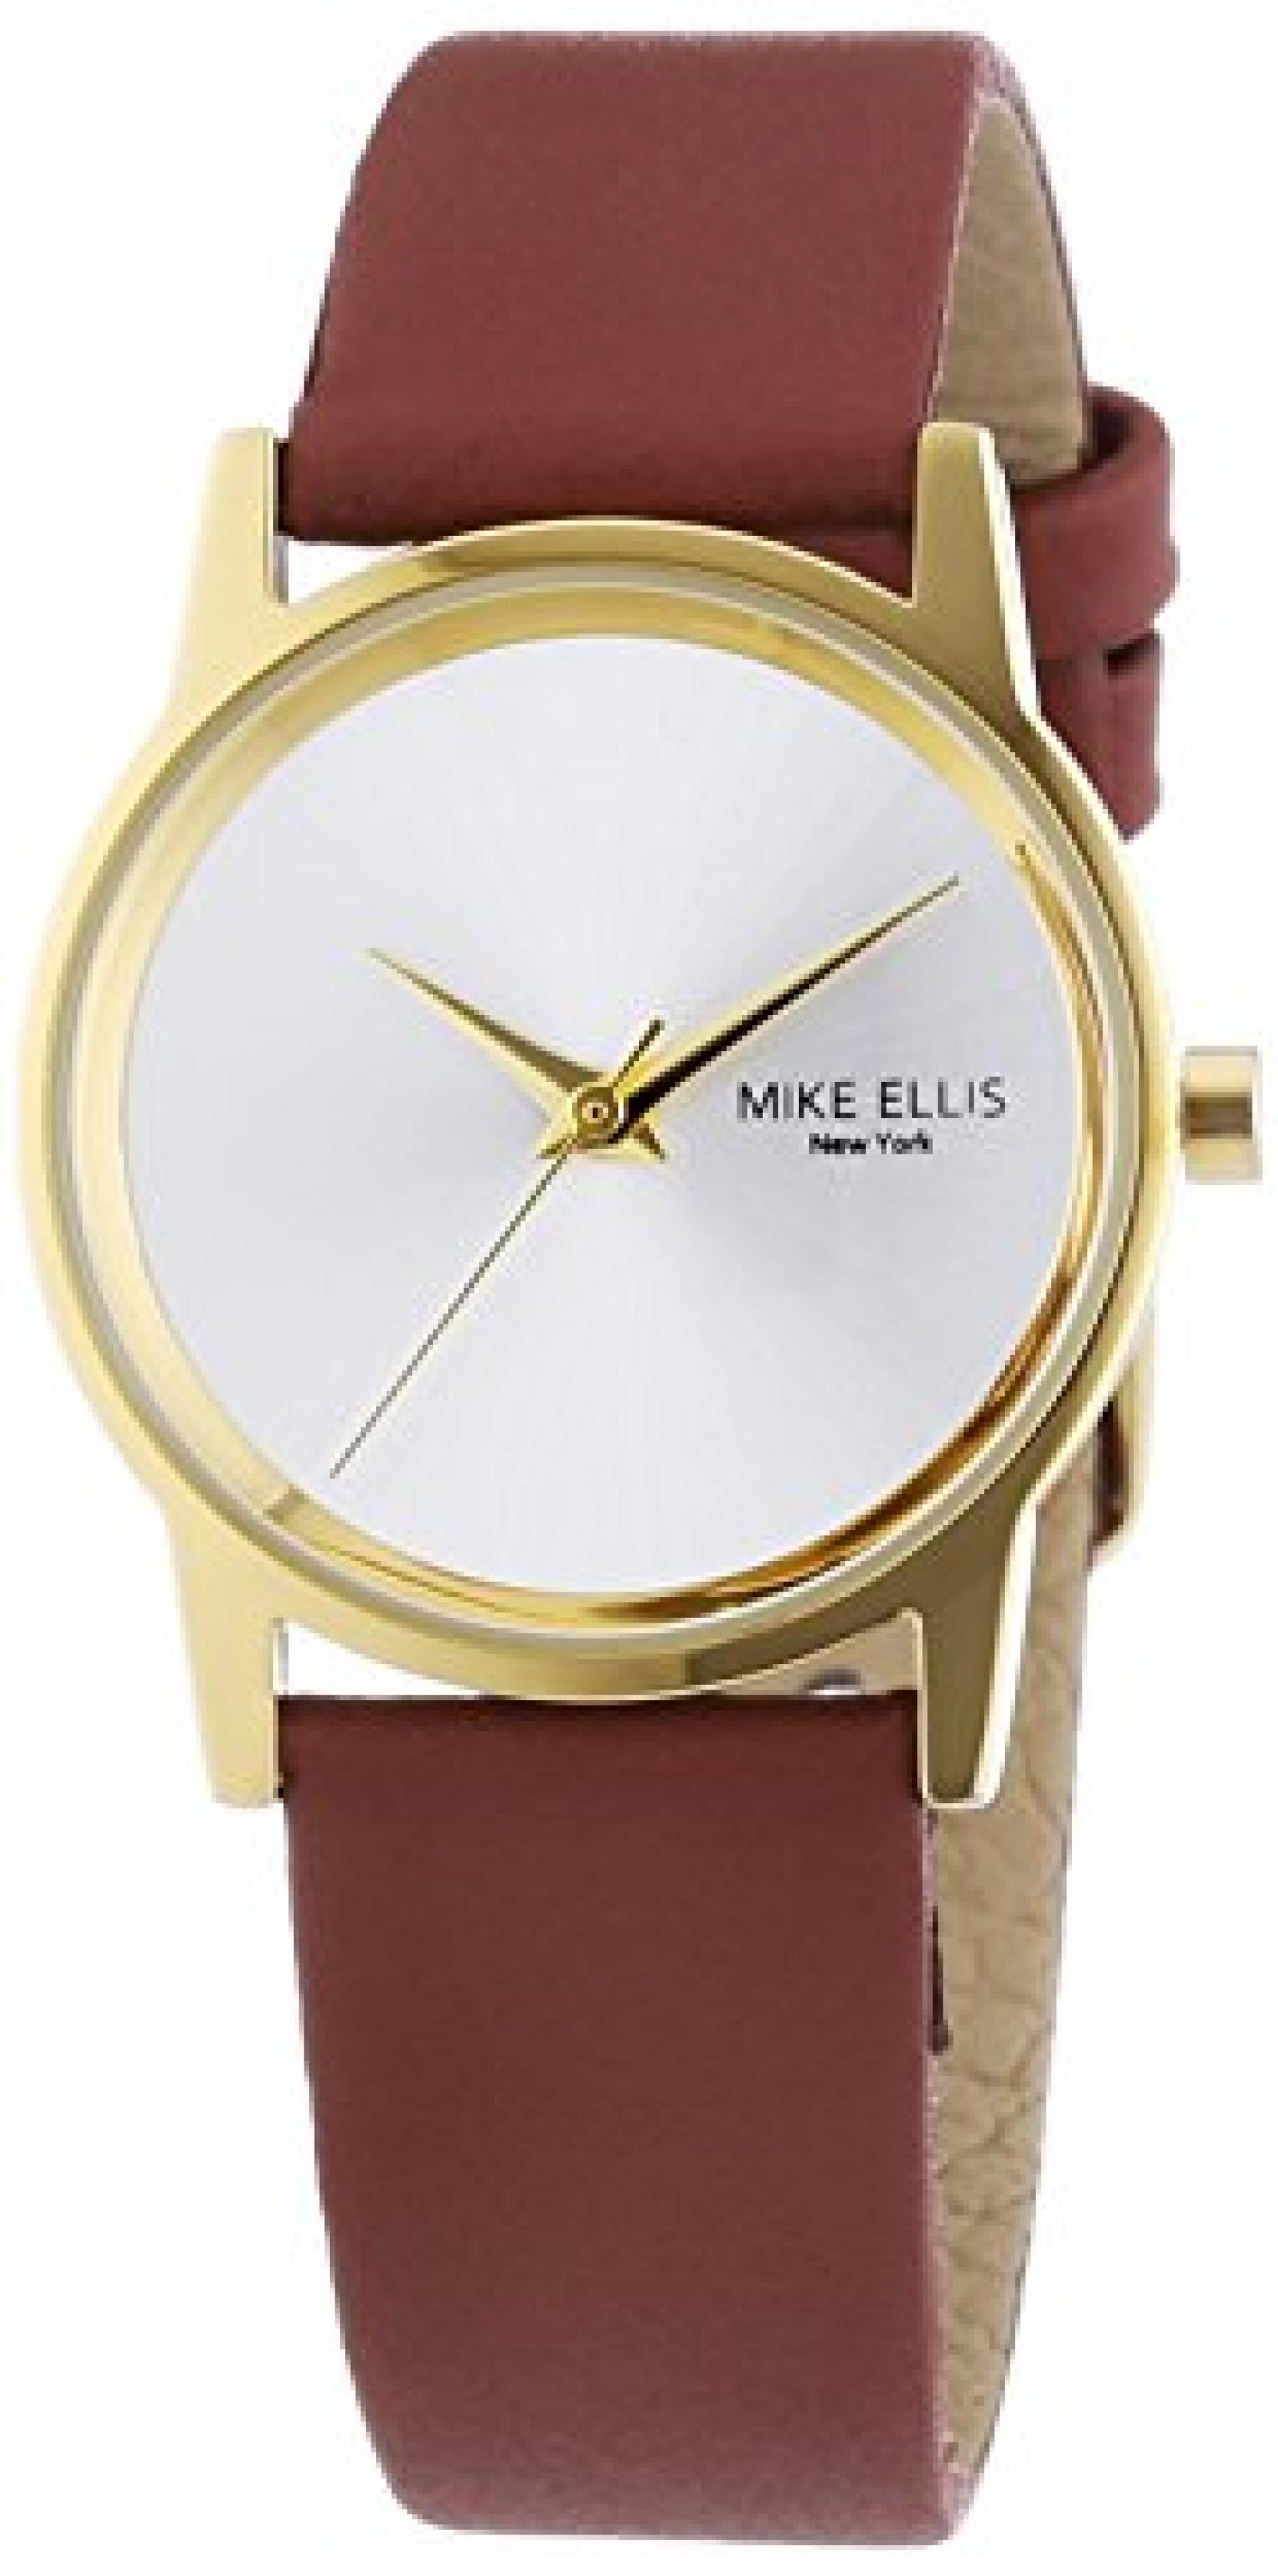 Mike Ellis New York Damen-Armbanduhr XS AW Analog Quarz Leder SL4-60230A